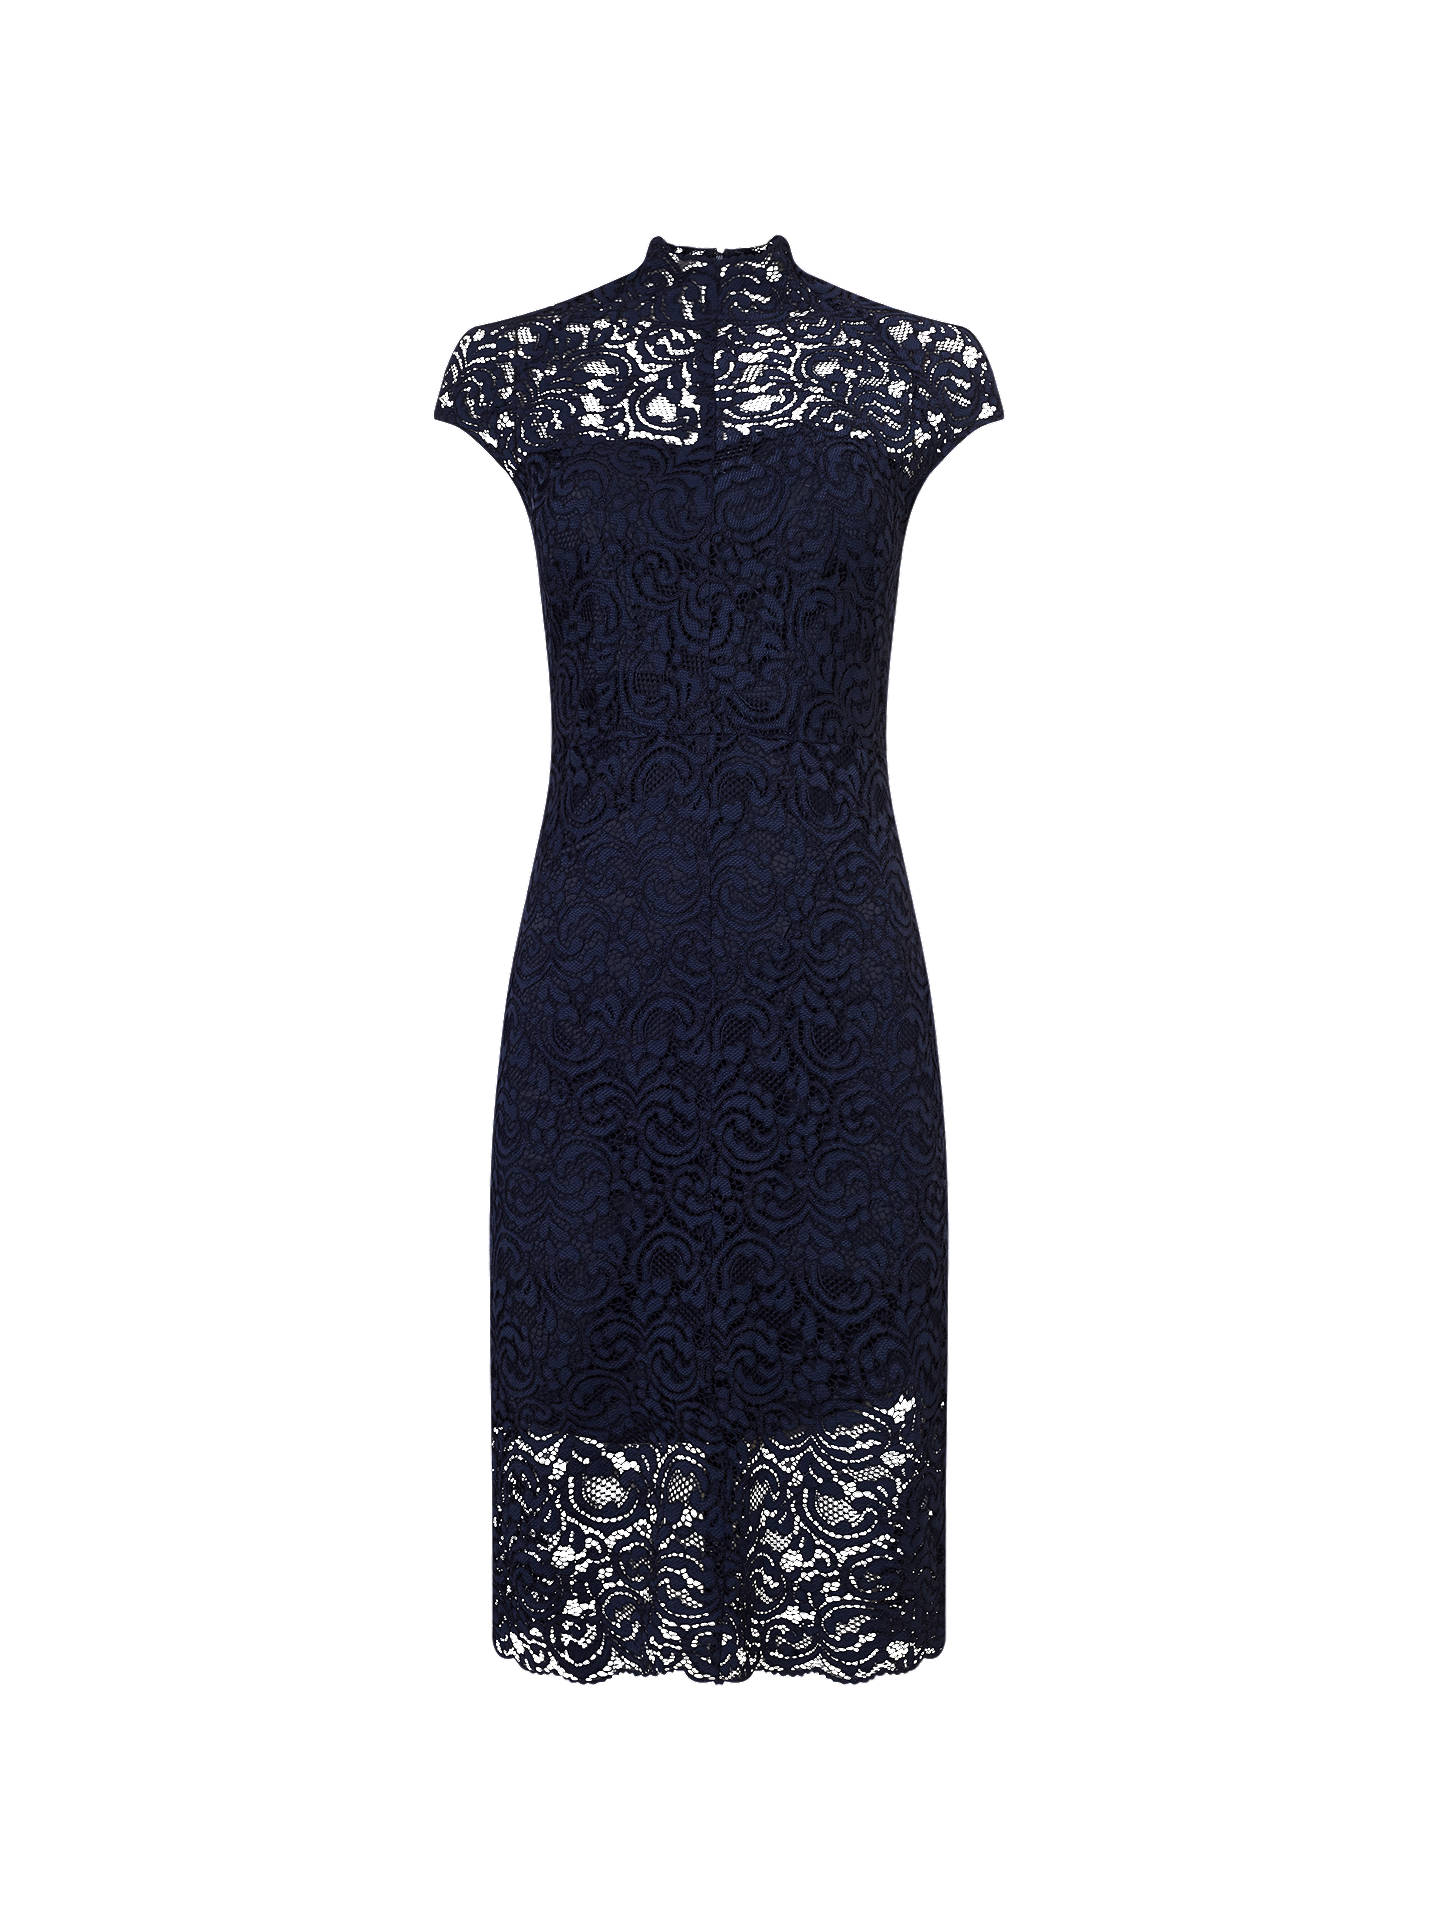 BuyPhase Eight True Lace Dress, Navy, 6 Online at johnlewis.com